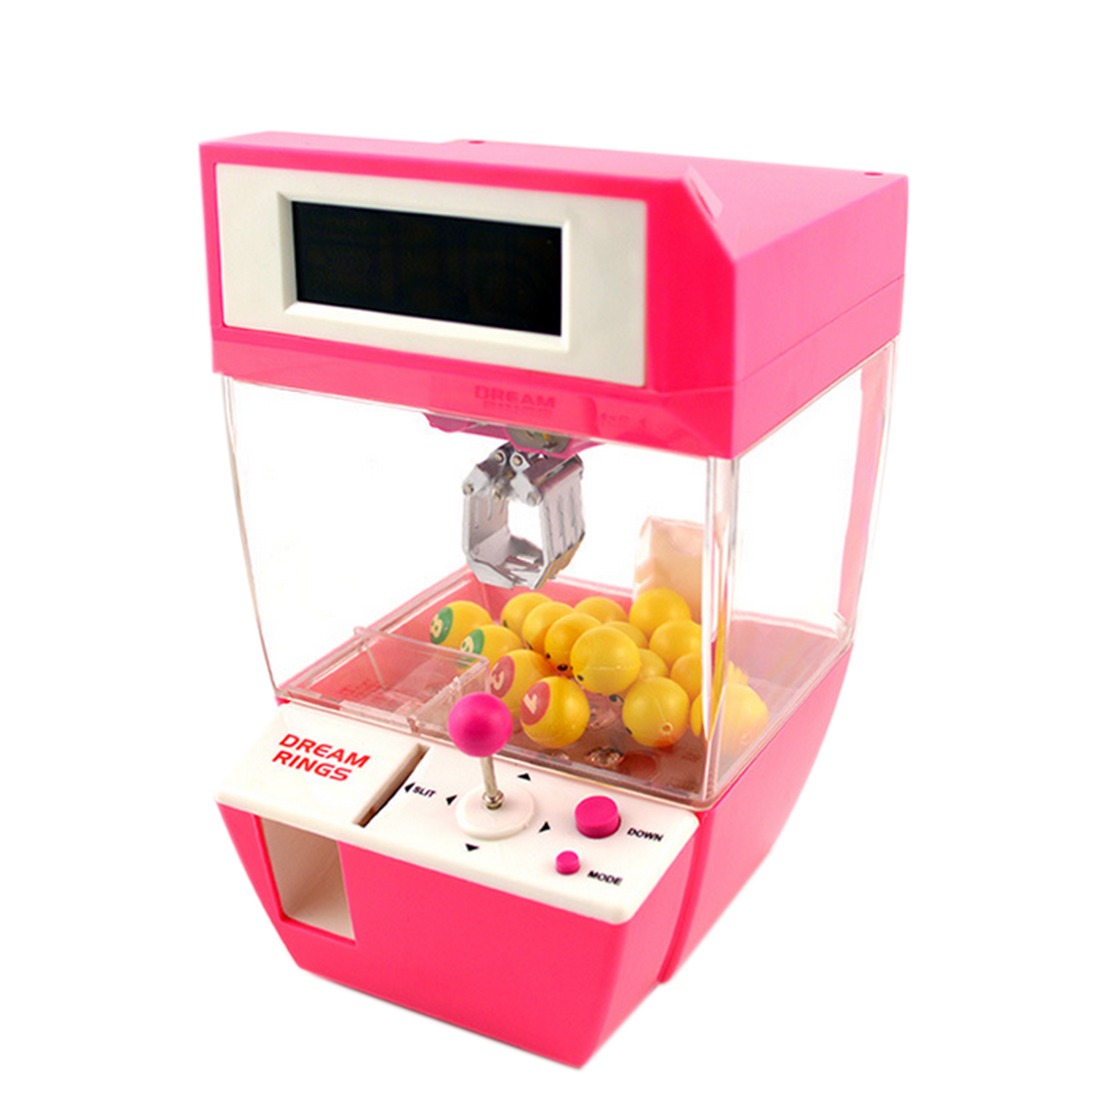 Coin Operated Candy Grabber Desktop Doll Candy Catcher